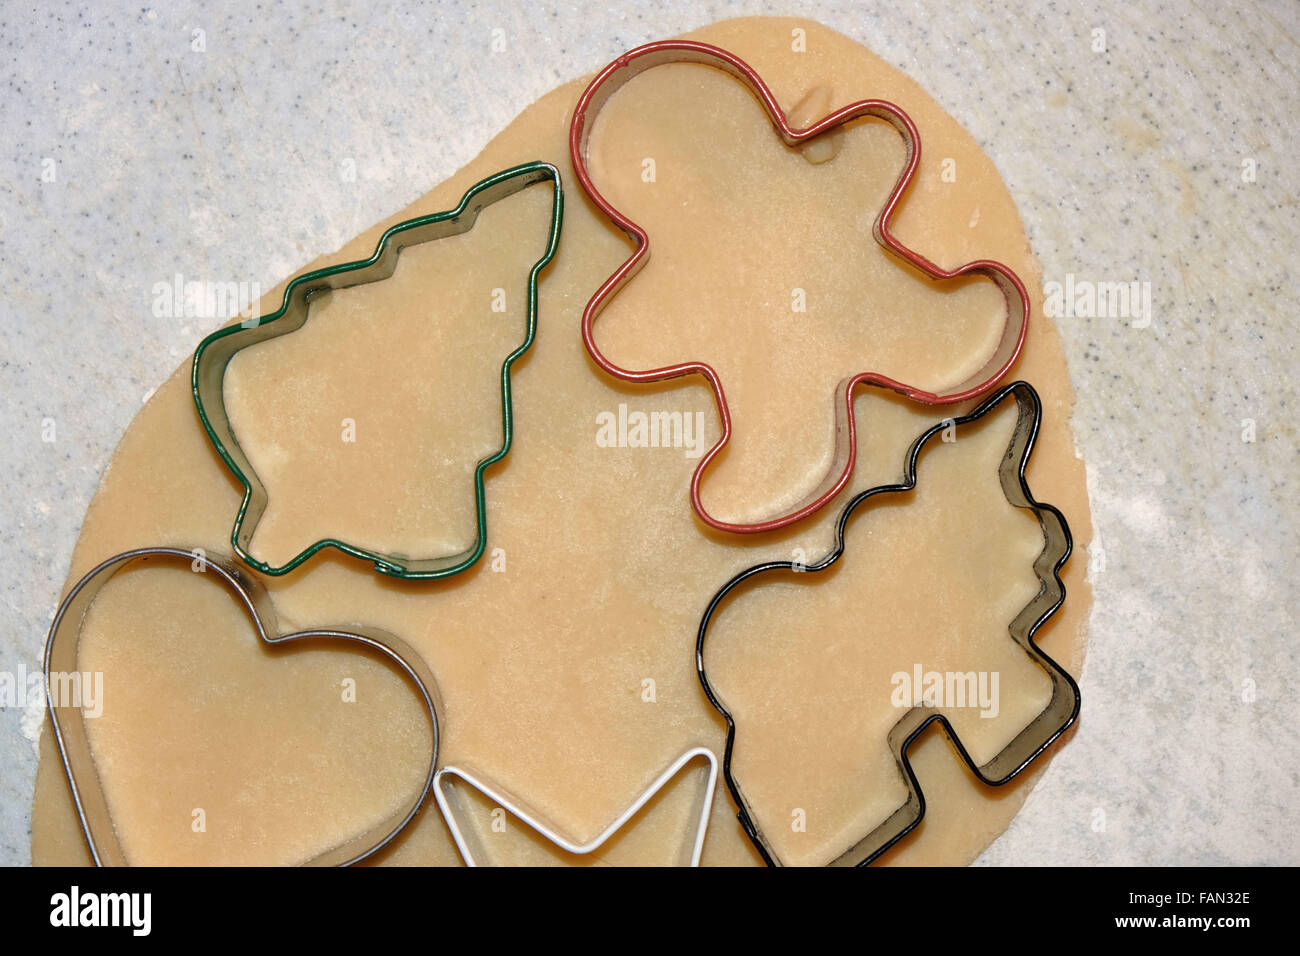 Christmas sugar cookie dough with cutouts. - Stock Image